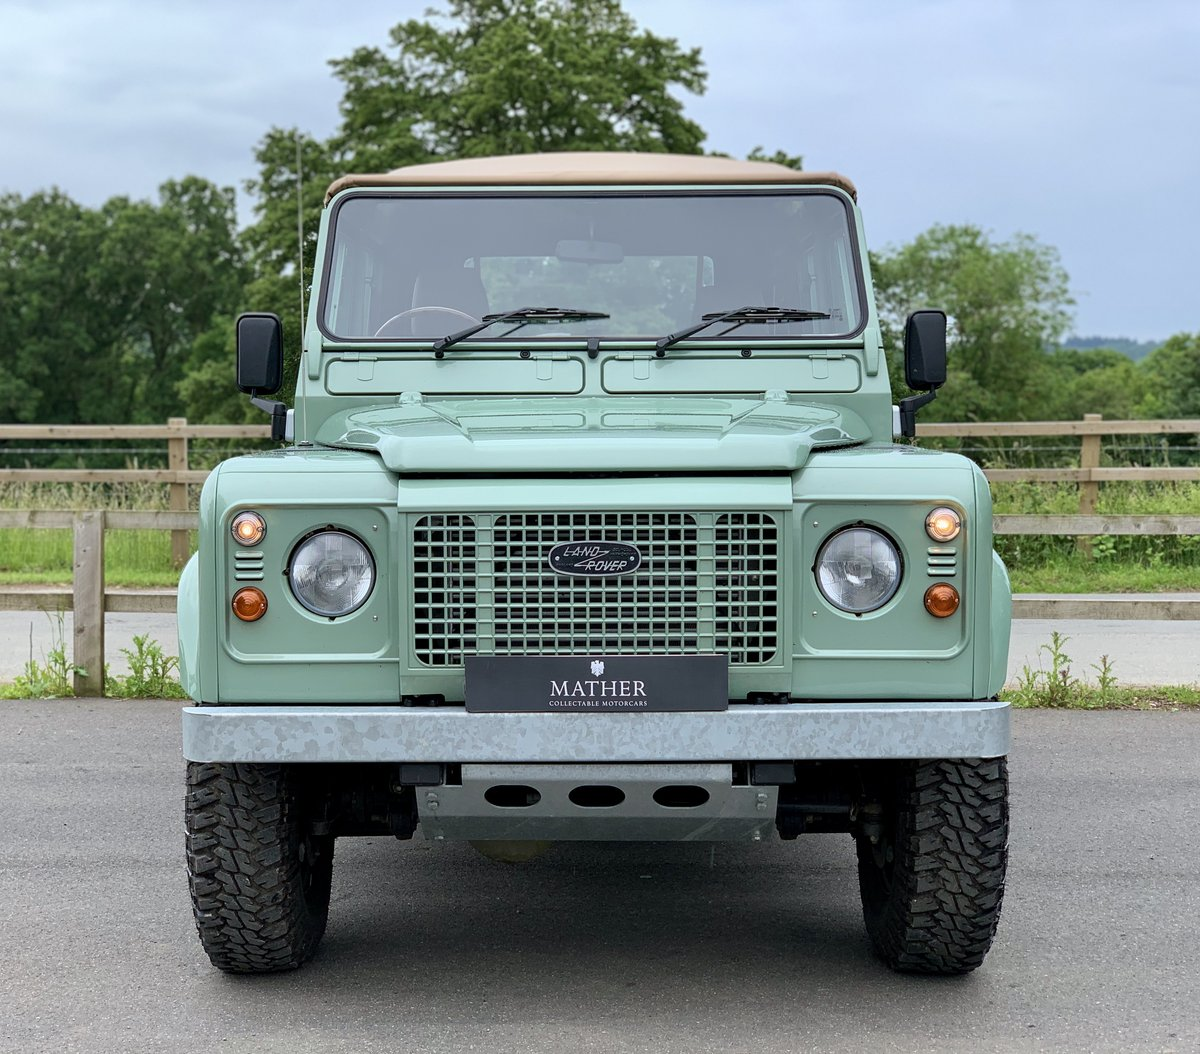 2002 Land Rover Defender 110 Safari  For Sale (picture 2 of 12)